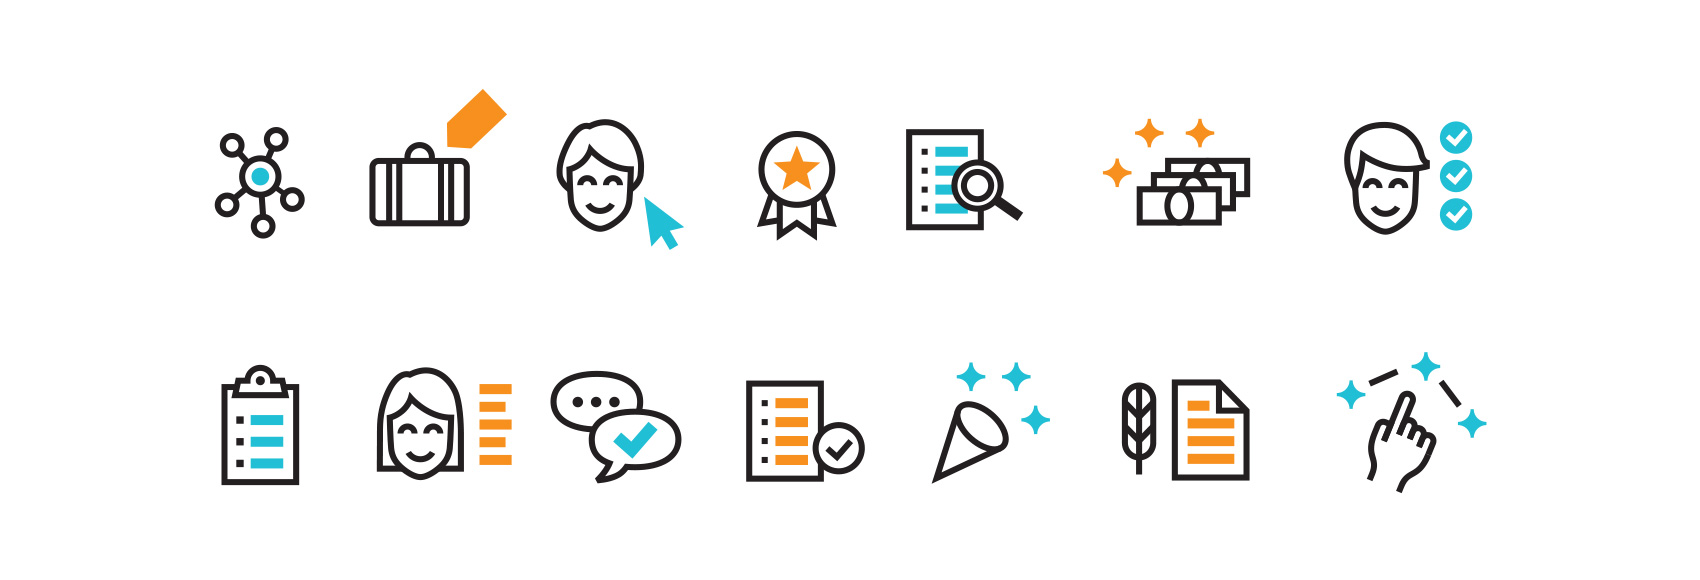 Icon set for Hire an Esquire - network, briefcase, selecting a lawyer, top notch, searching resumes, paying/payment, requirement fulfillment, checklist/clipboard, lawyer profile, checklist, signing a document, connecting the dots.